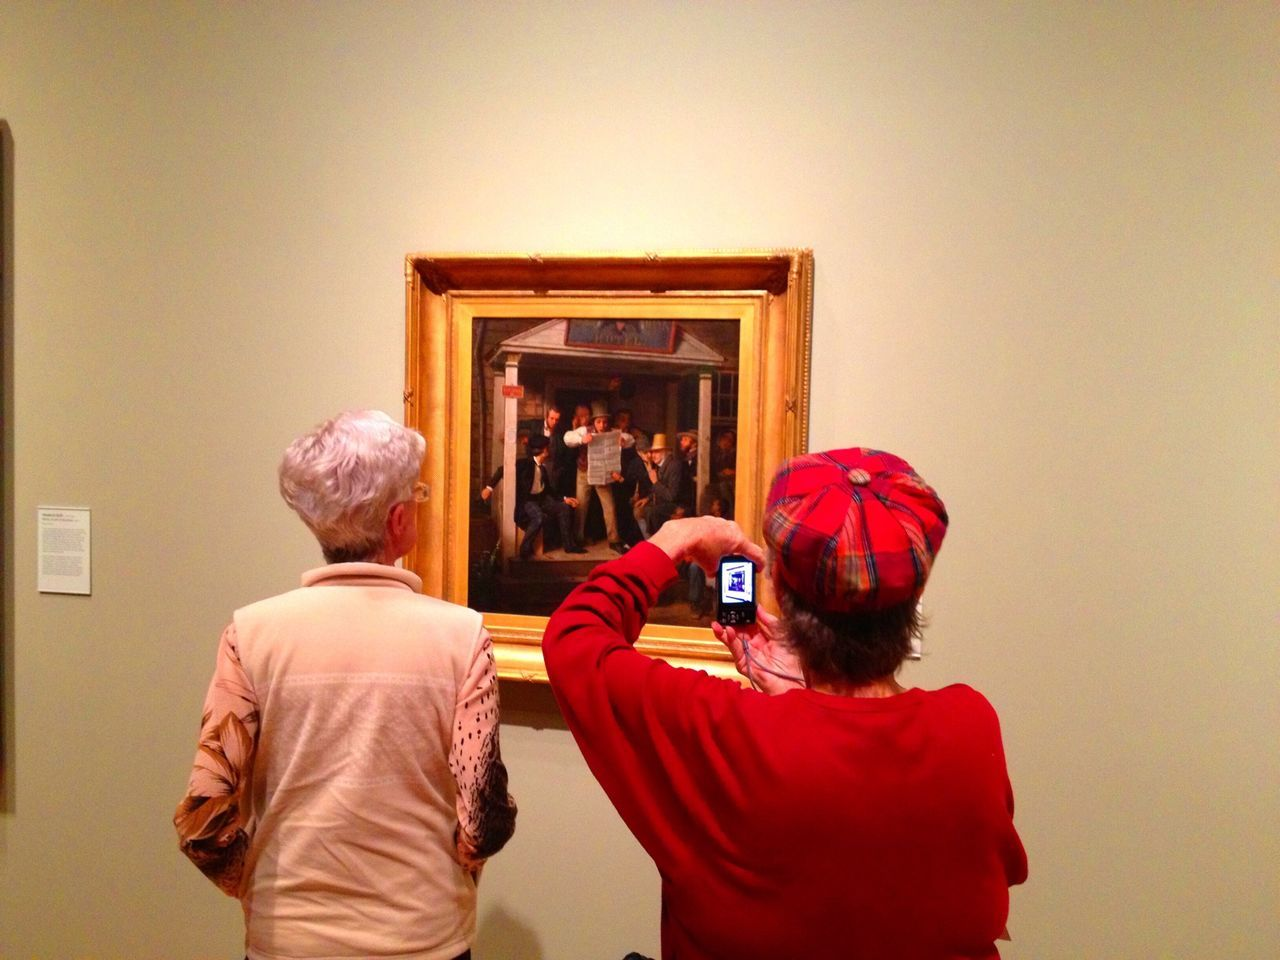 real people, rear view, photographing, photography themes, technology, men, two people, indoors, lifestyles, wireless technology, leisure activity, standing, camera - photographic equipment, cellphone, women, communication, togetherness, architecture, photo messaging, day